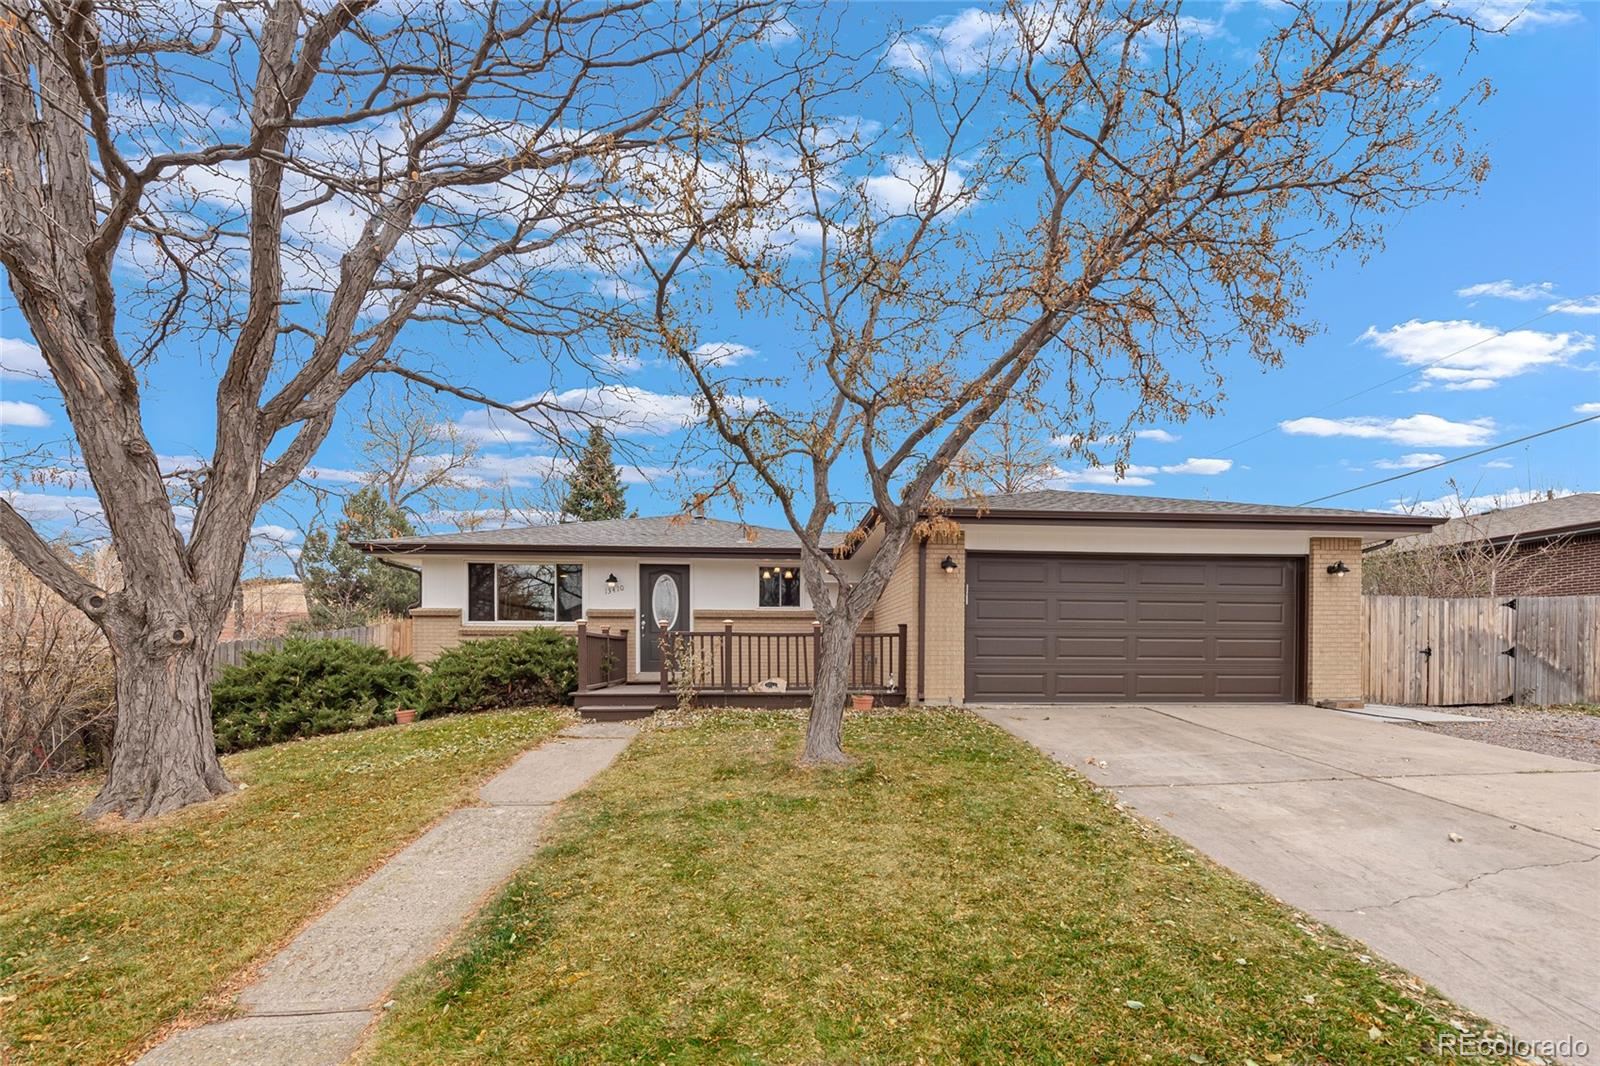 Photo of 13410 W 7th Avenue, Lakewood, CO 80401